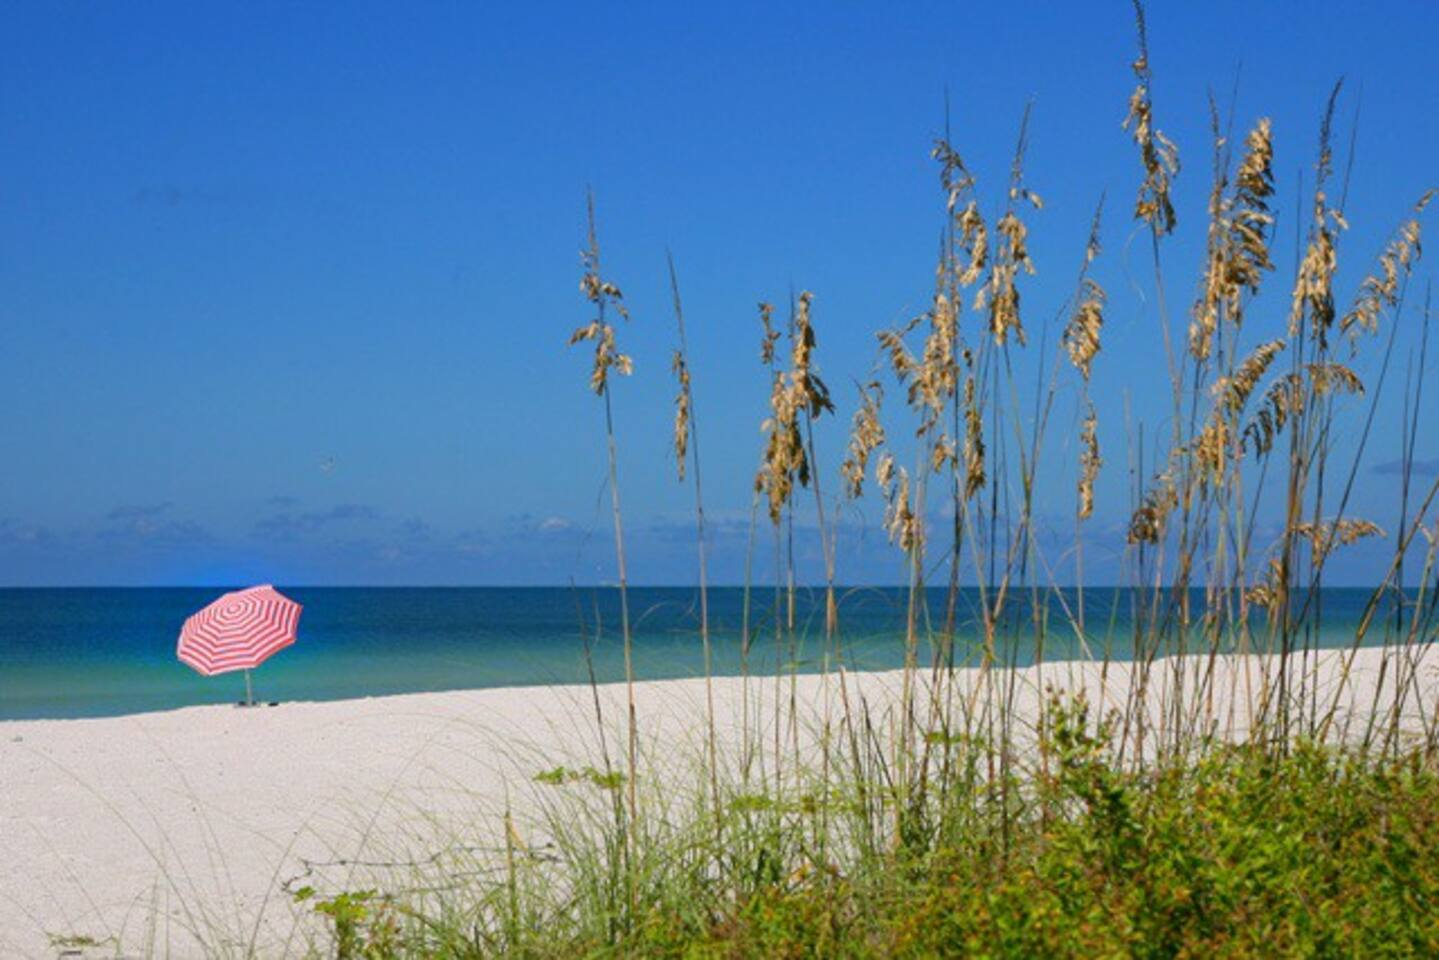 Just a 3 minute walk from your cottage/villa door - Crescent Beach on Siesta Key.